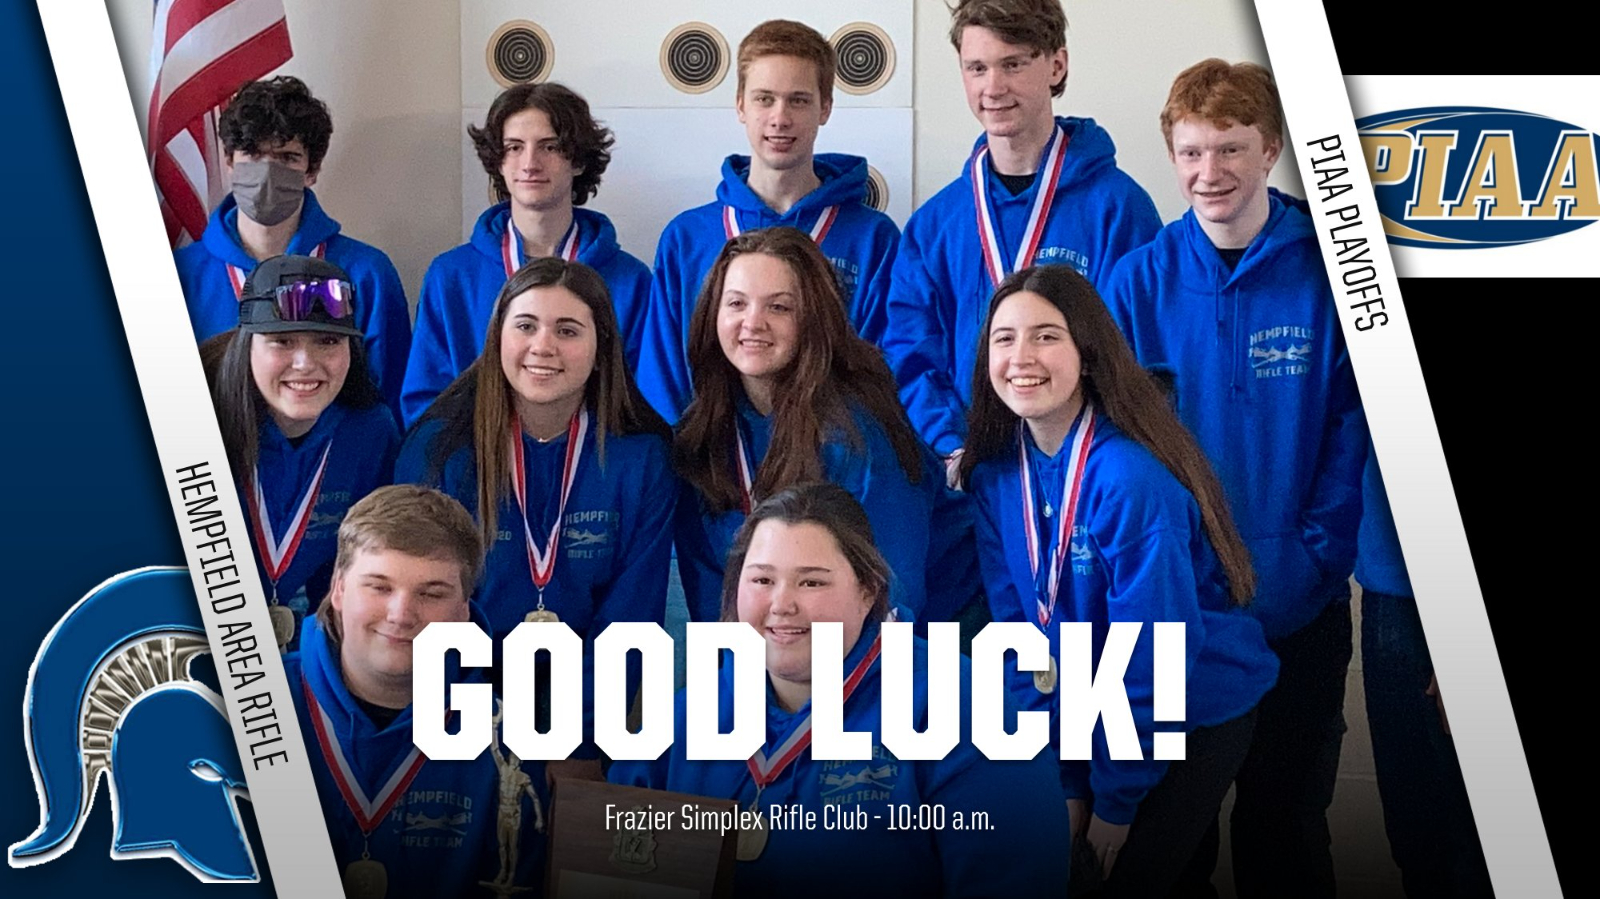 Good luck to the Rifle Team!